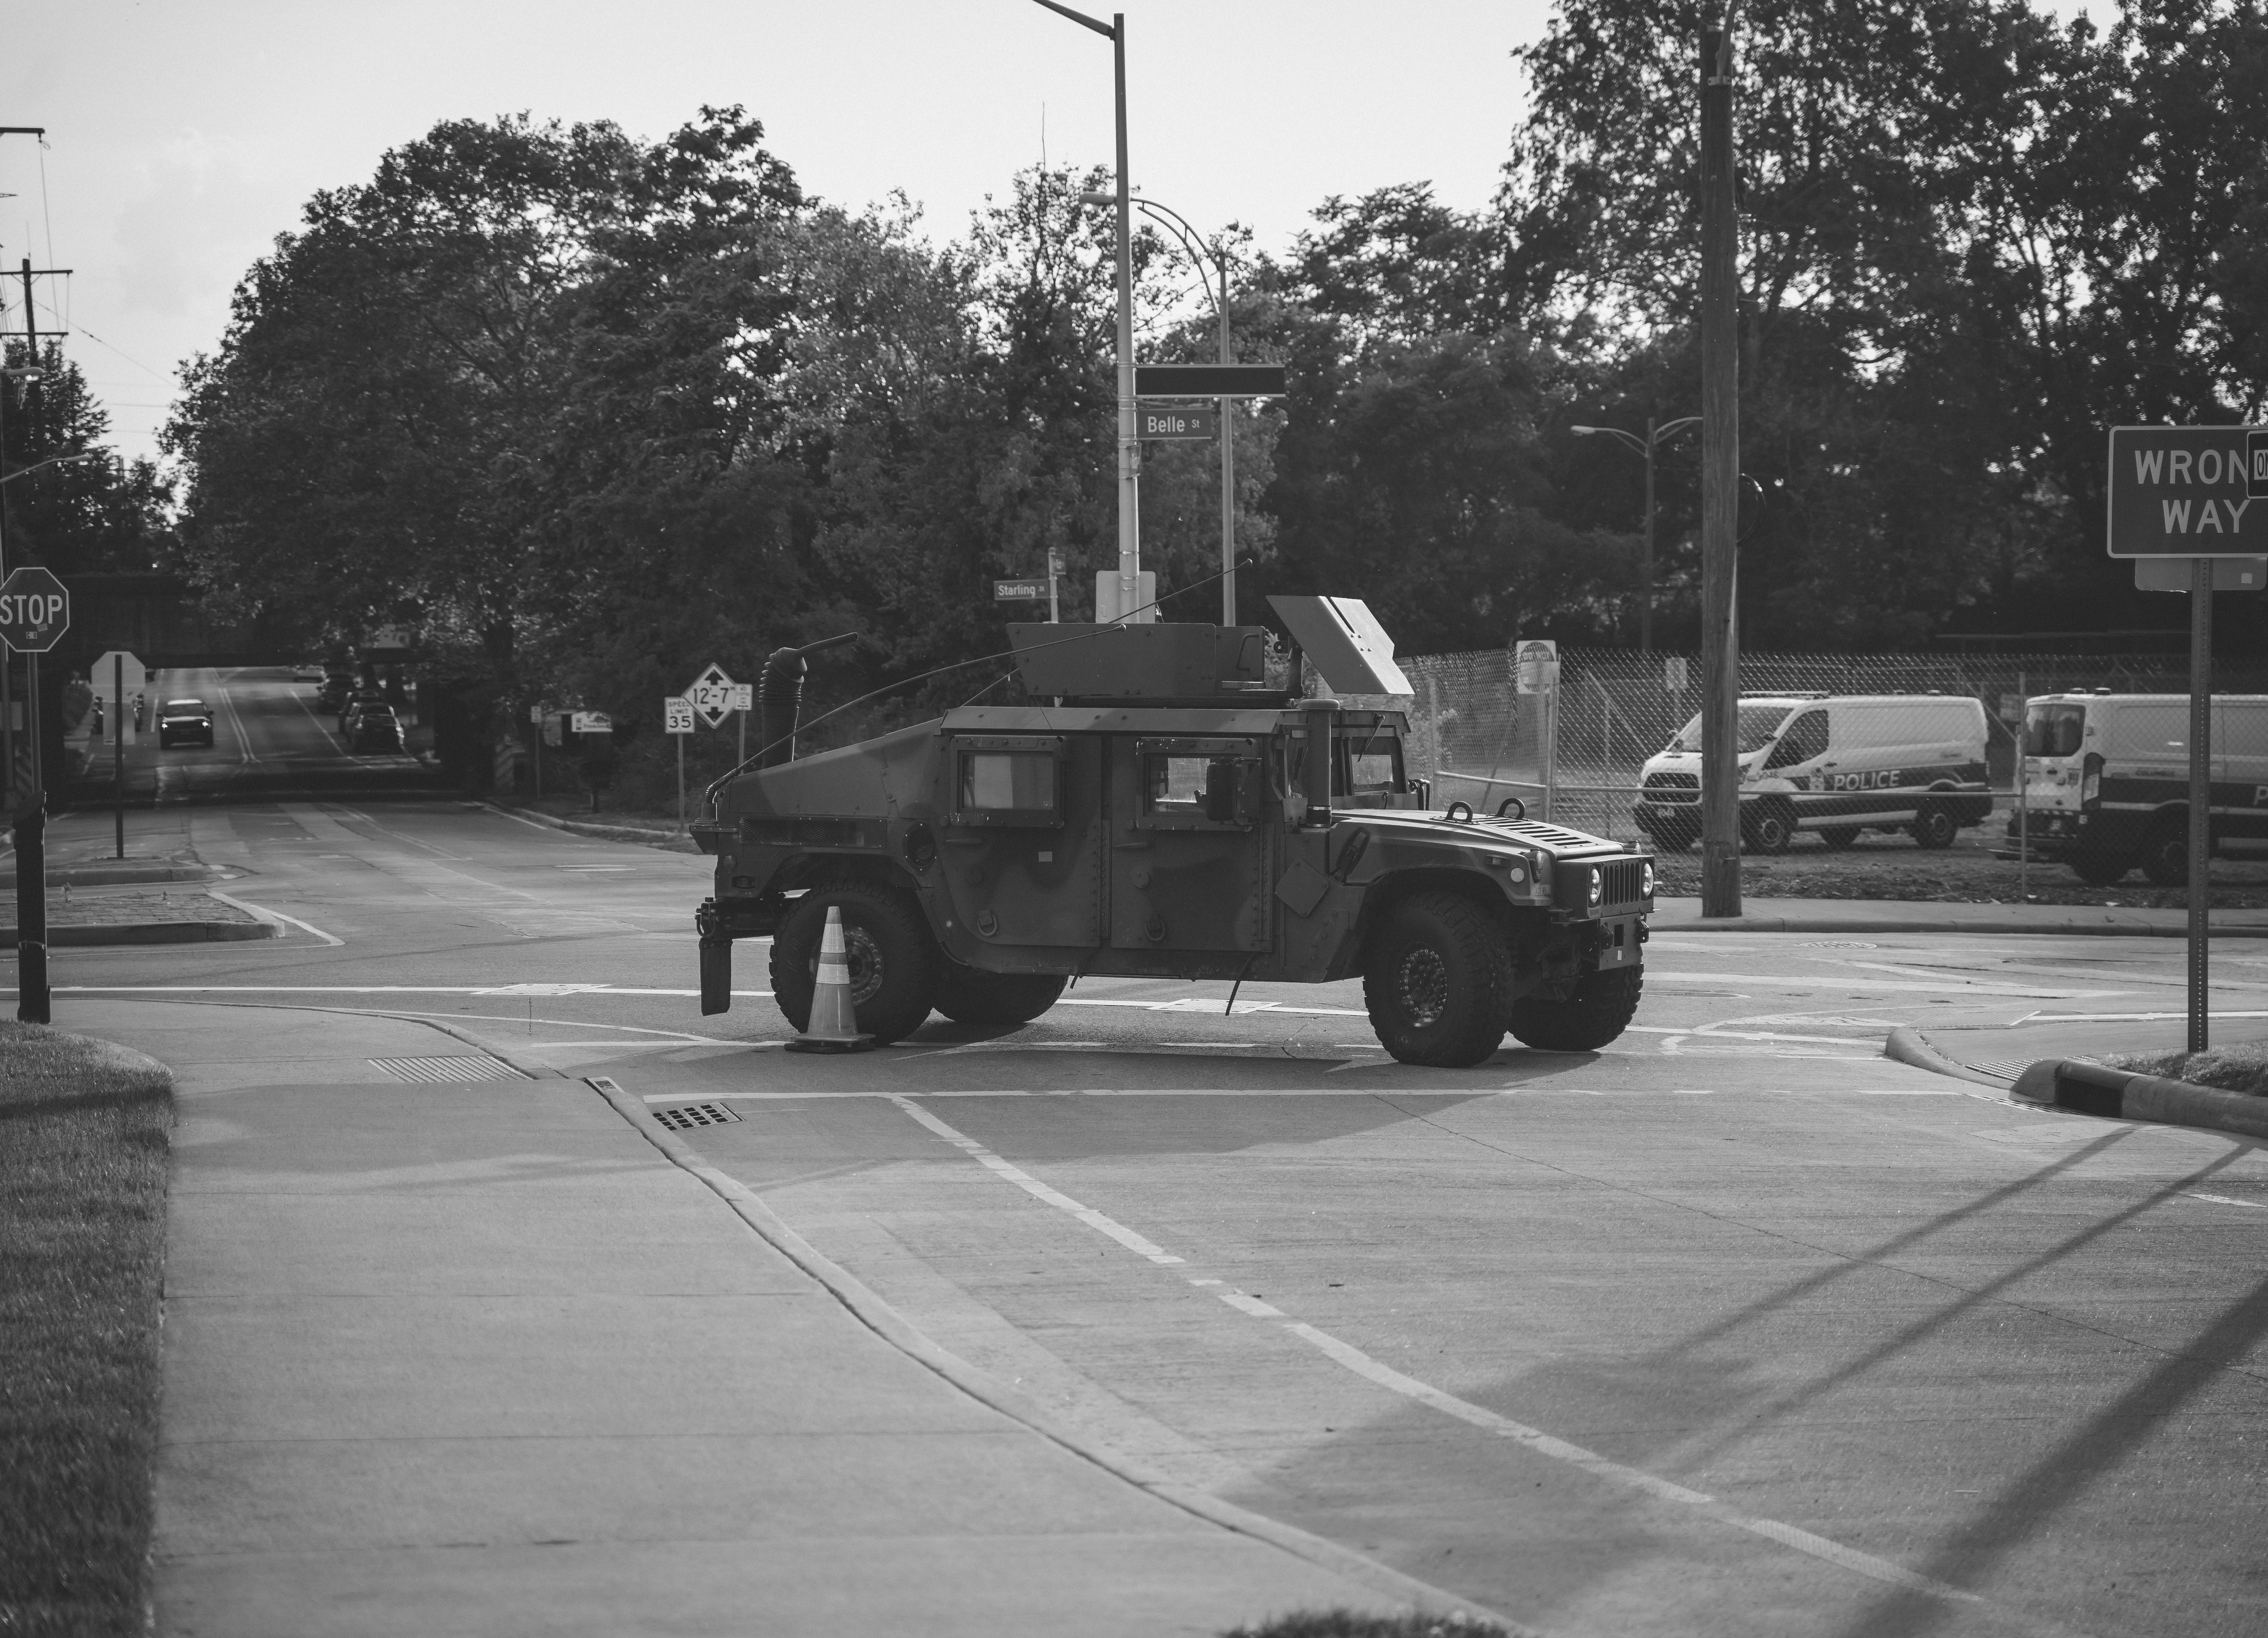 "A black and white photograph. The center of the frame is a military vehicle in downtown Columbus during BLM protests and blocks off an intersection. The background features police vehicles, streetlights and four roads that meet at the intersection the military vehicle sits in. On the right edge of the image, a street sign that is cut off a bit reads ""Wrong Way."""